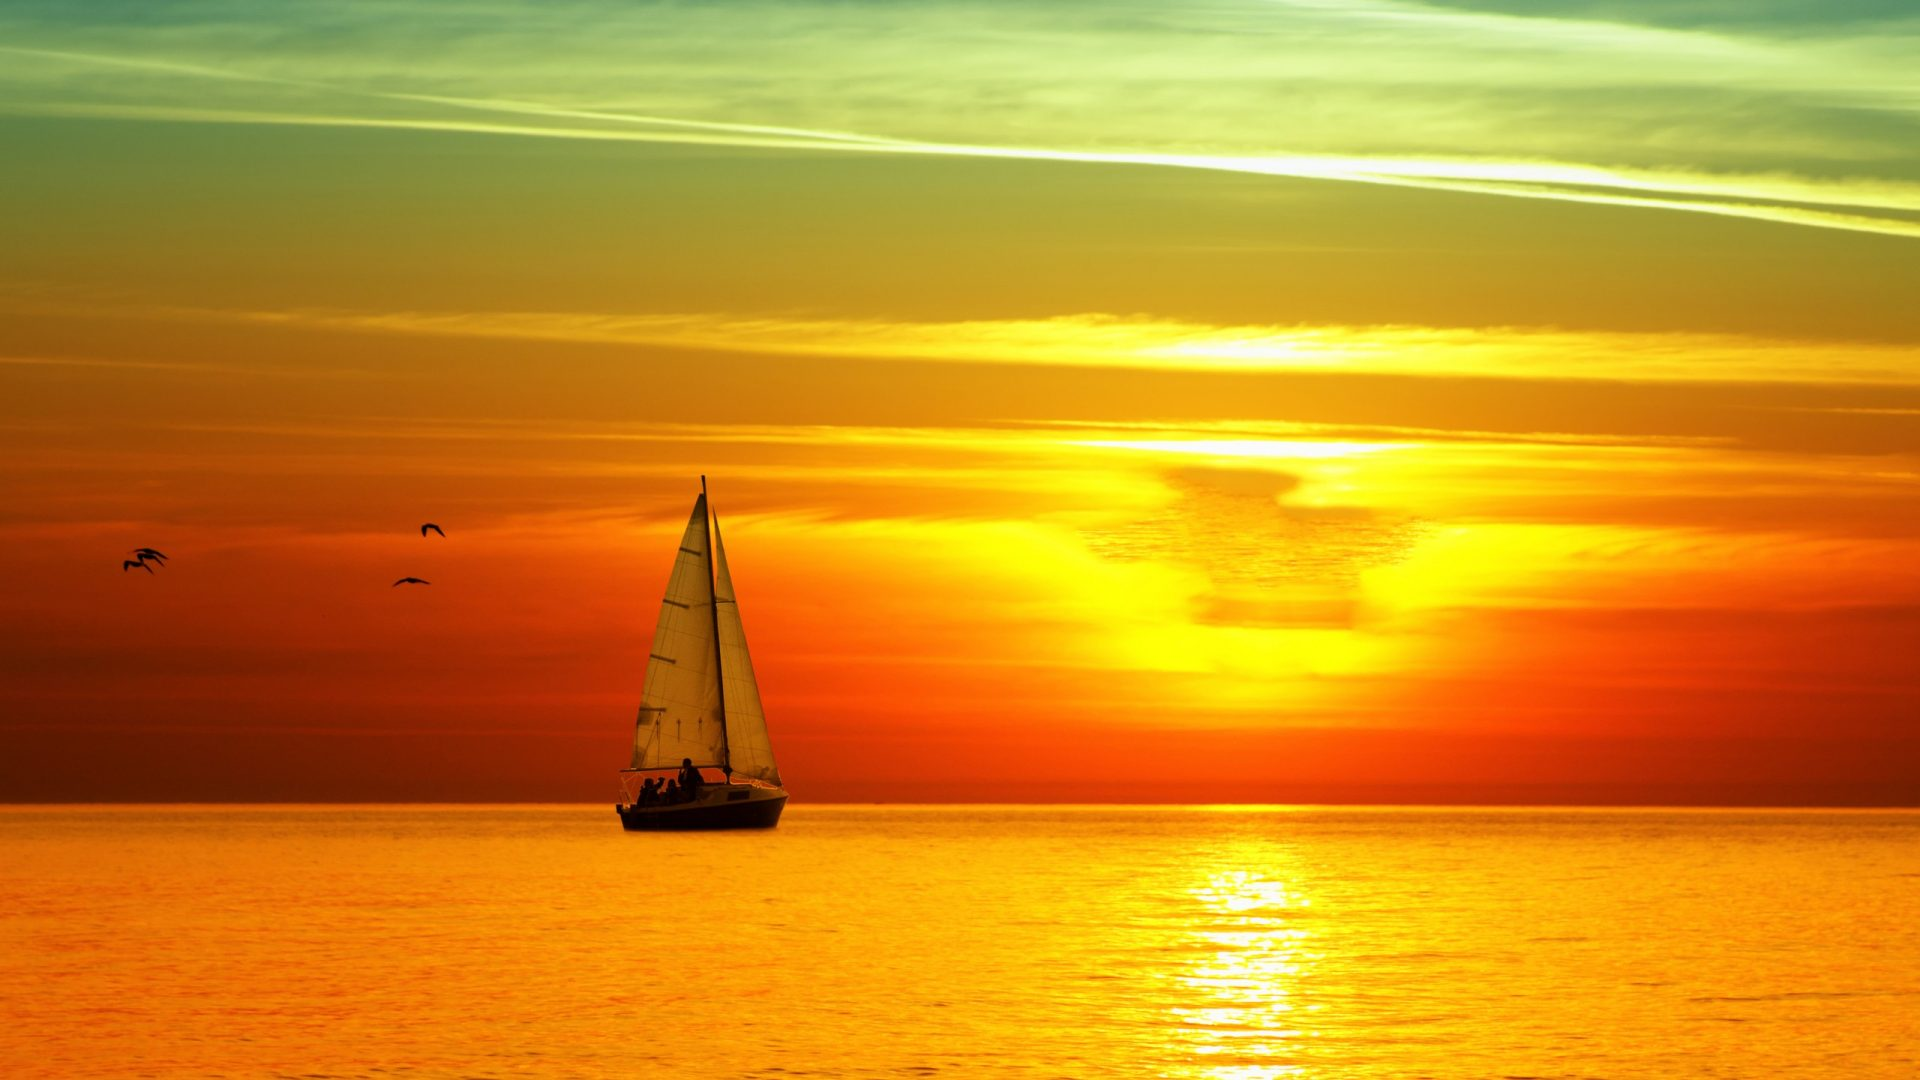 beaches-sailing-amber-brightness-multicolor-awesome-navigating-sailboat-birds-paisage-photography-pa-wallpaper-wp3603061